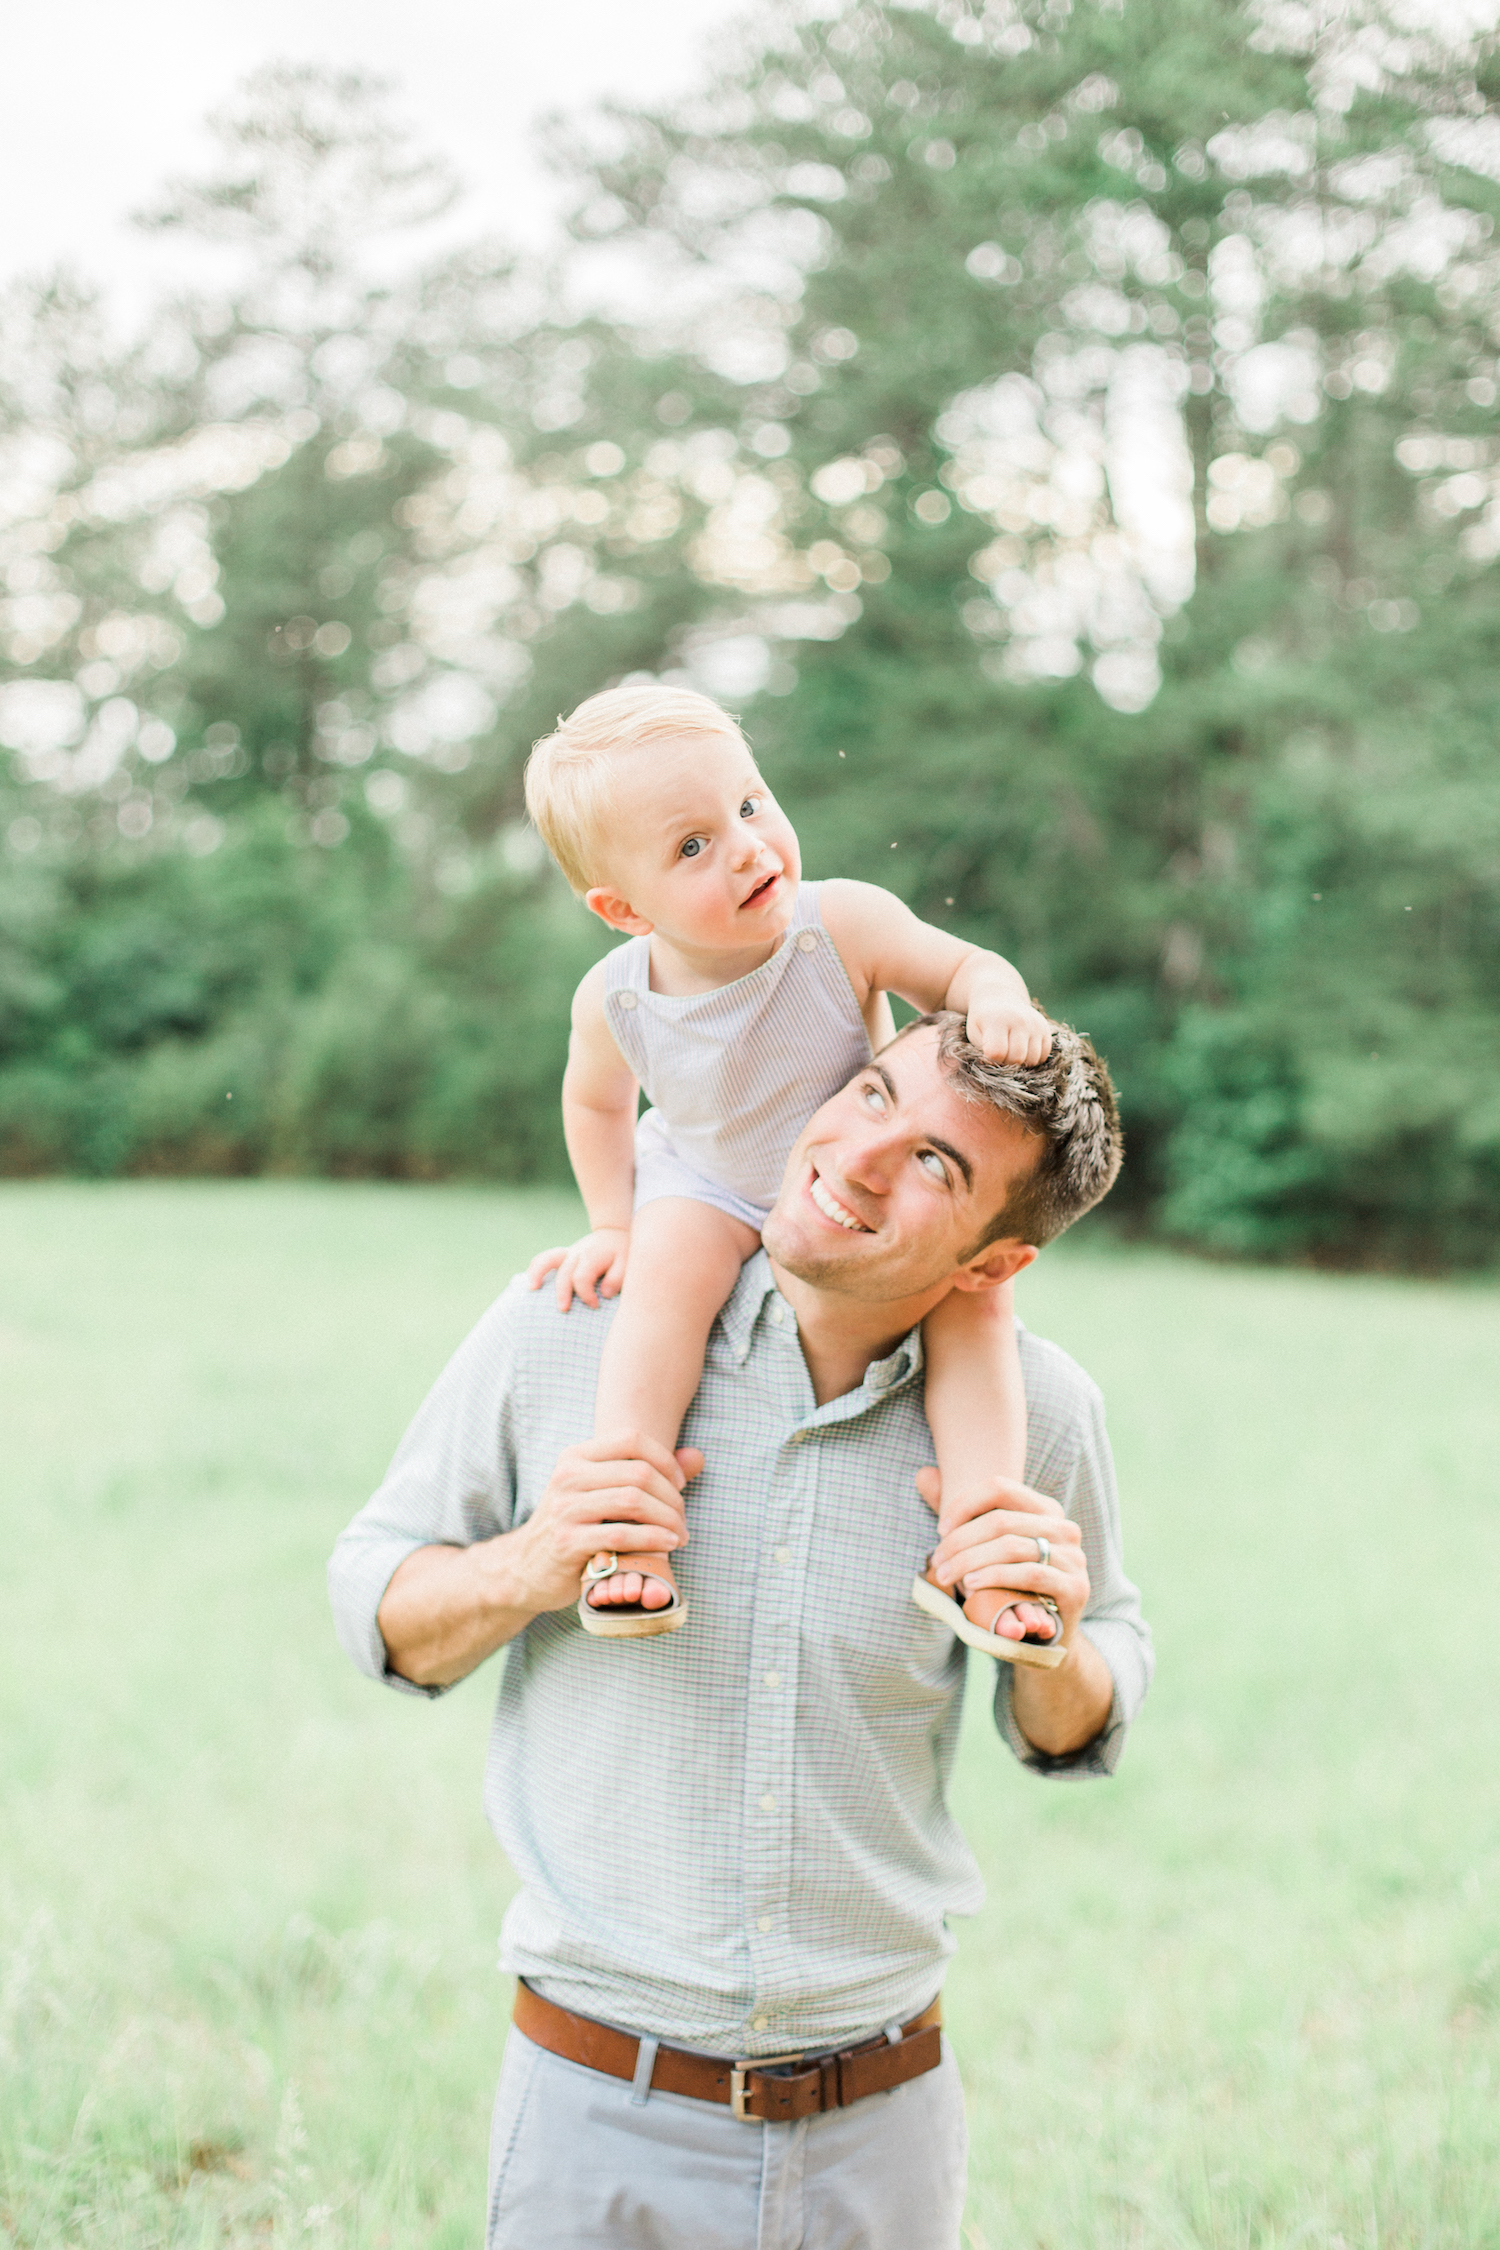 Father and son photo during spring time family session in Atlanta, Georgia. Pastel family photo outfits.